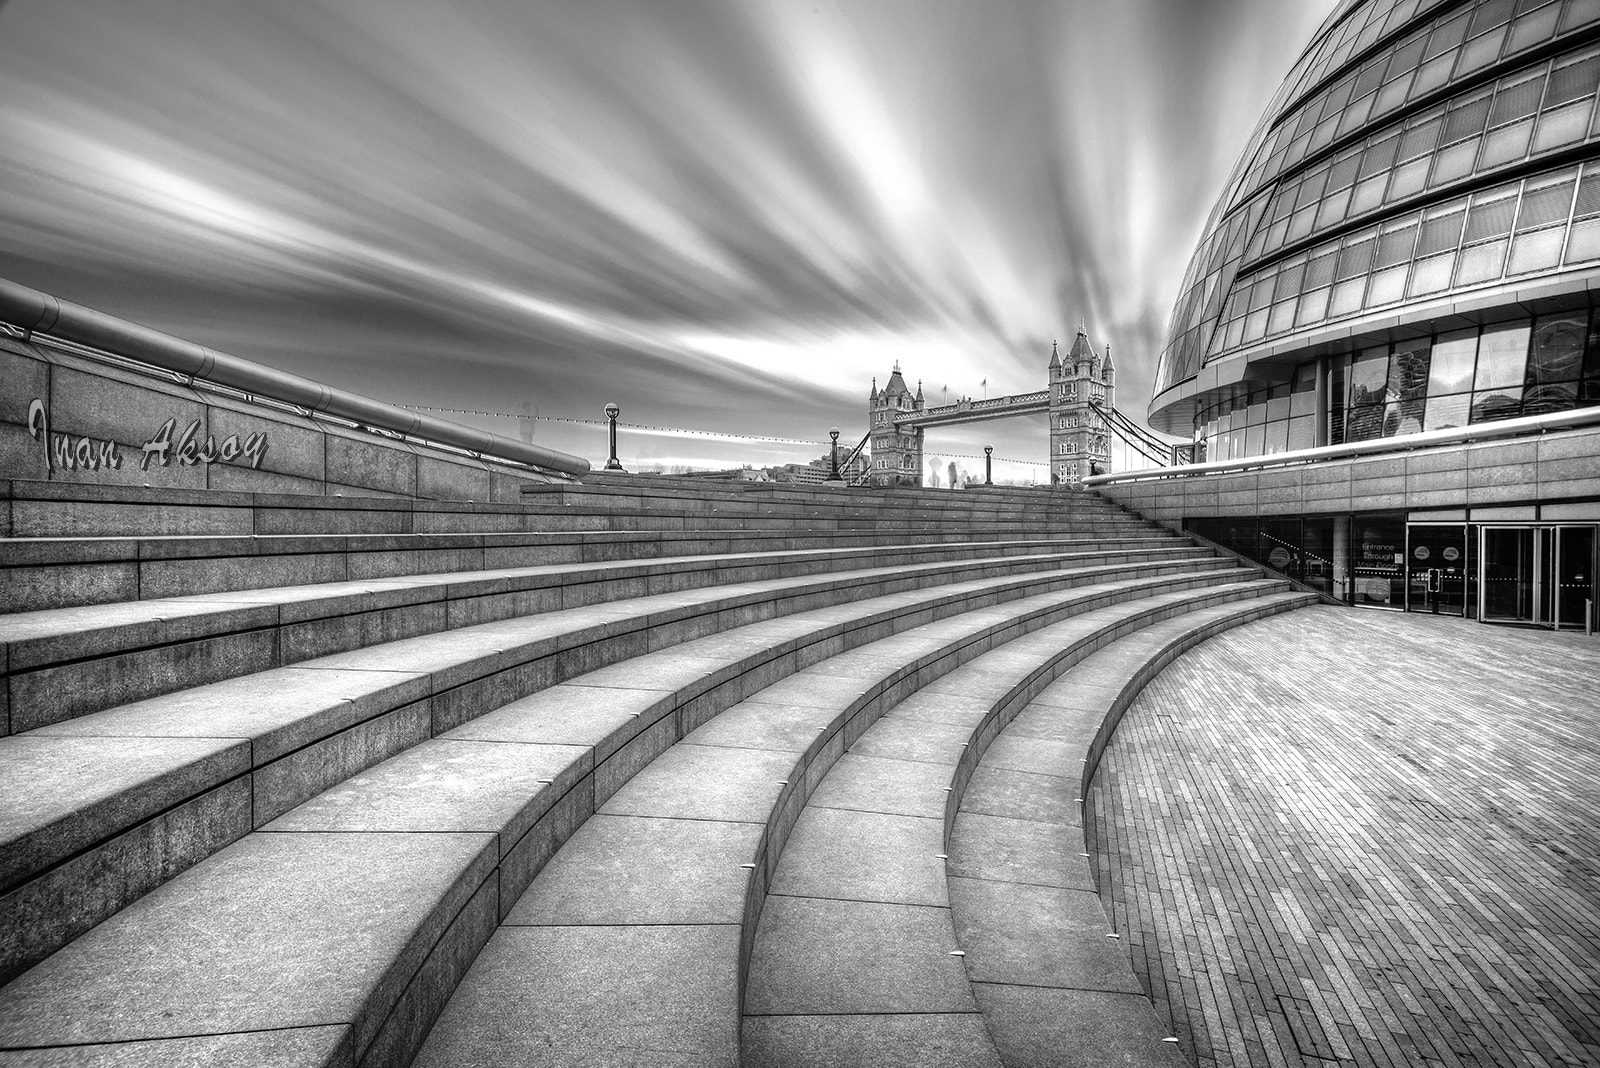 Photograph London City Hall and Tower Bridge by Inan Aksoy on 500px